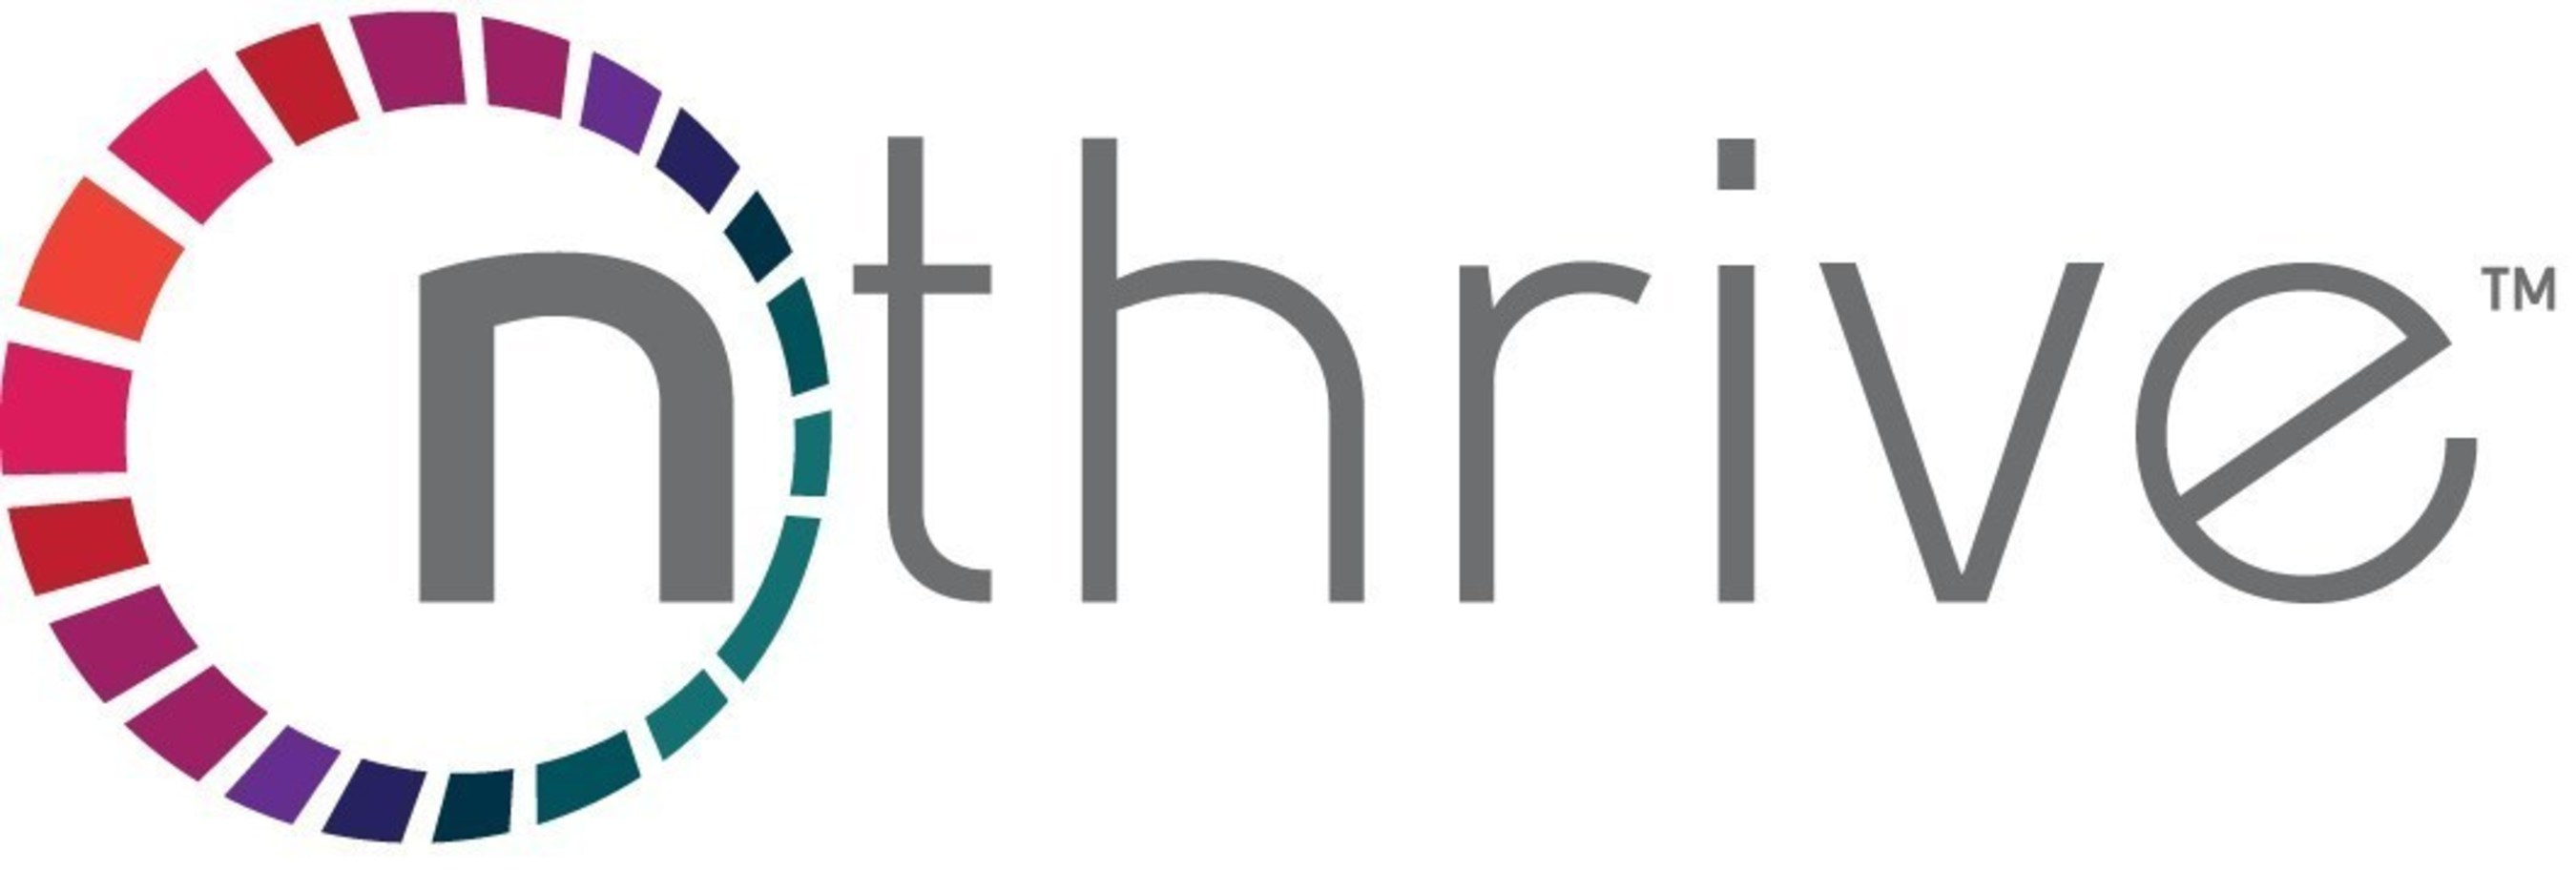 nThrive Offerings Create Efficiencies, Return More Dollars to Providers